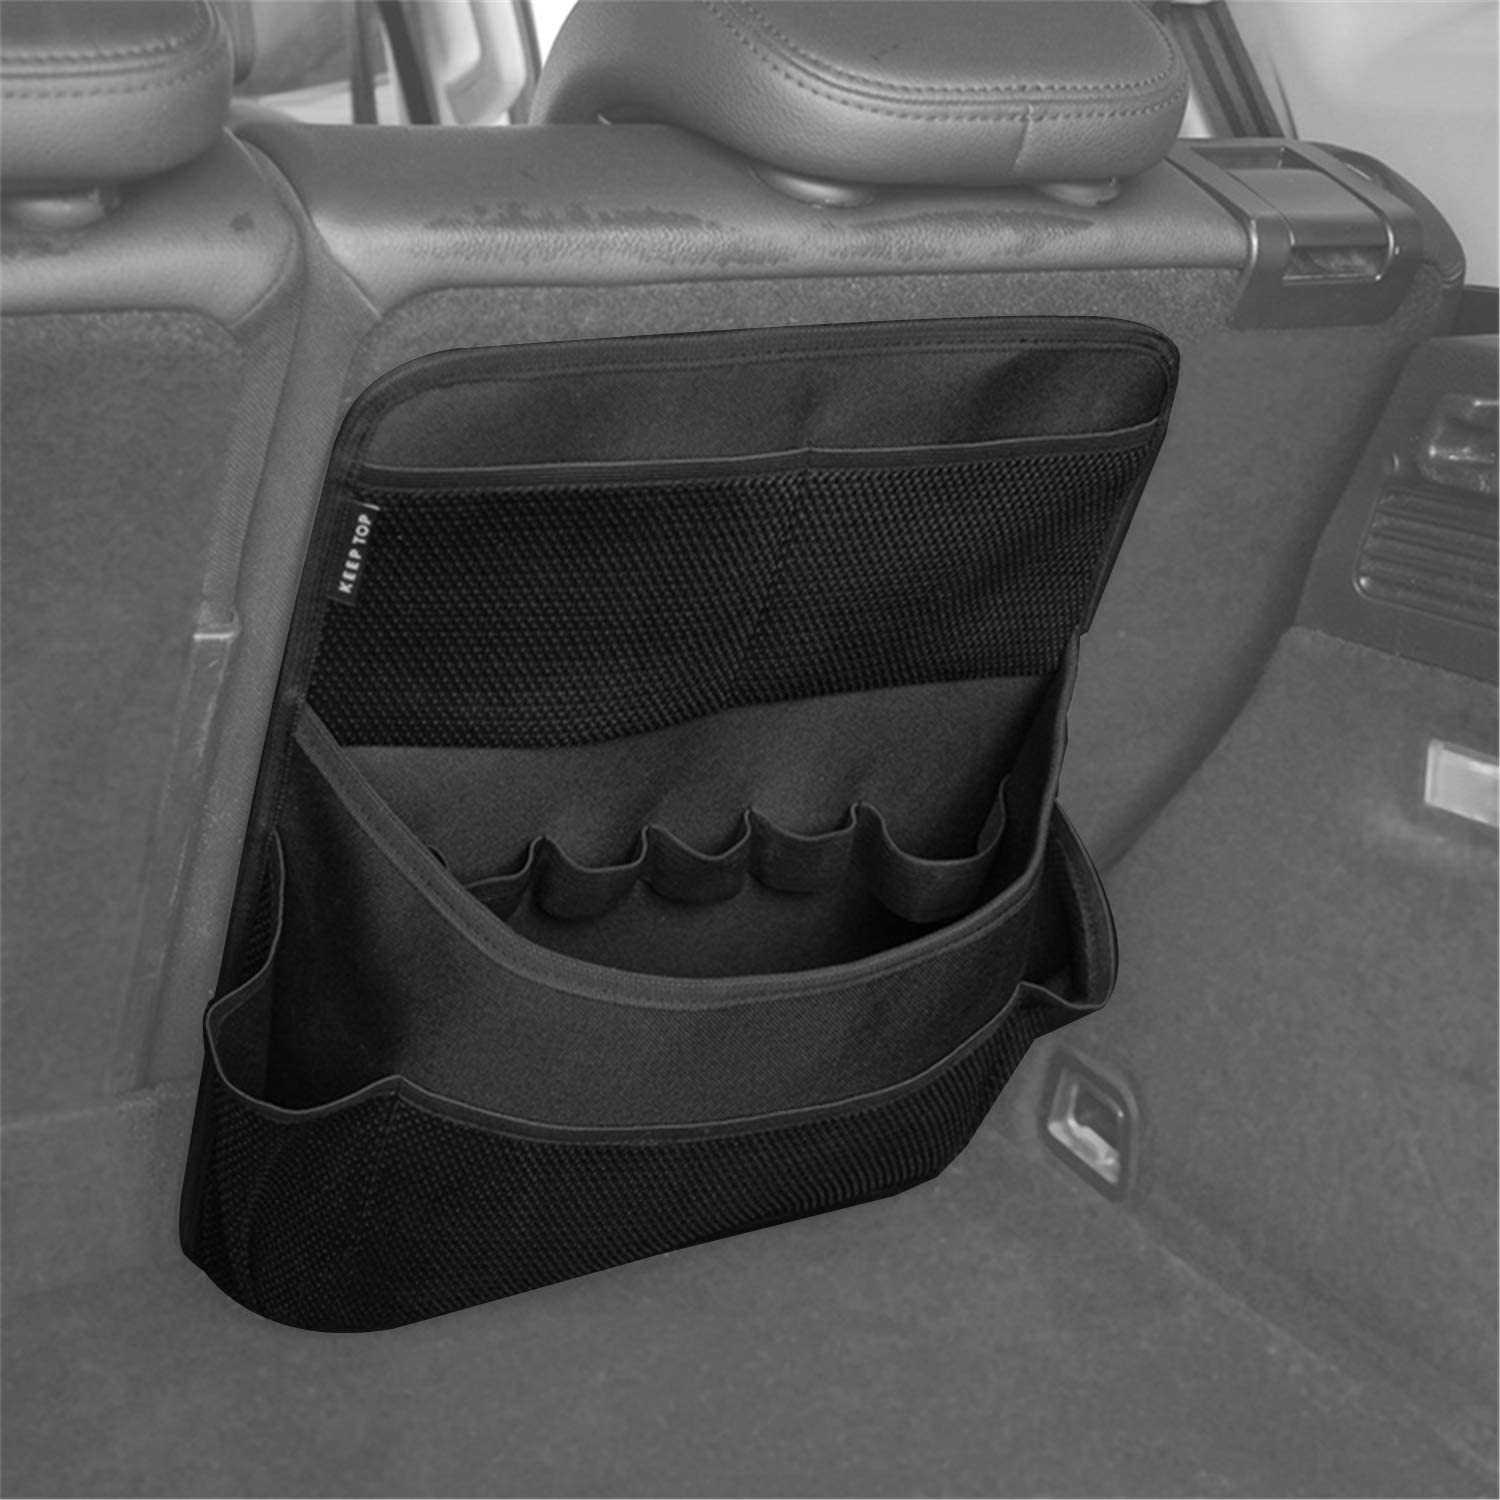 YOCTM Backseat Trunk Organizer for SUV & Car Fits 2018 2019 Jeep Wrangler JL JLU Sports Rubicon 2020 Gladiator JT Organizer Interior Accessories